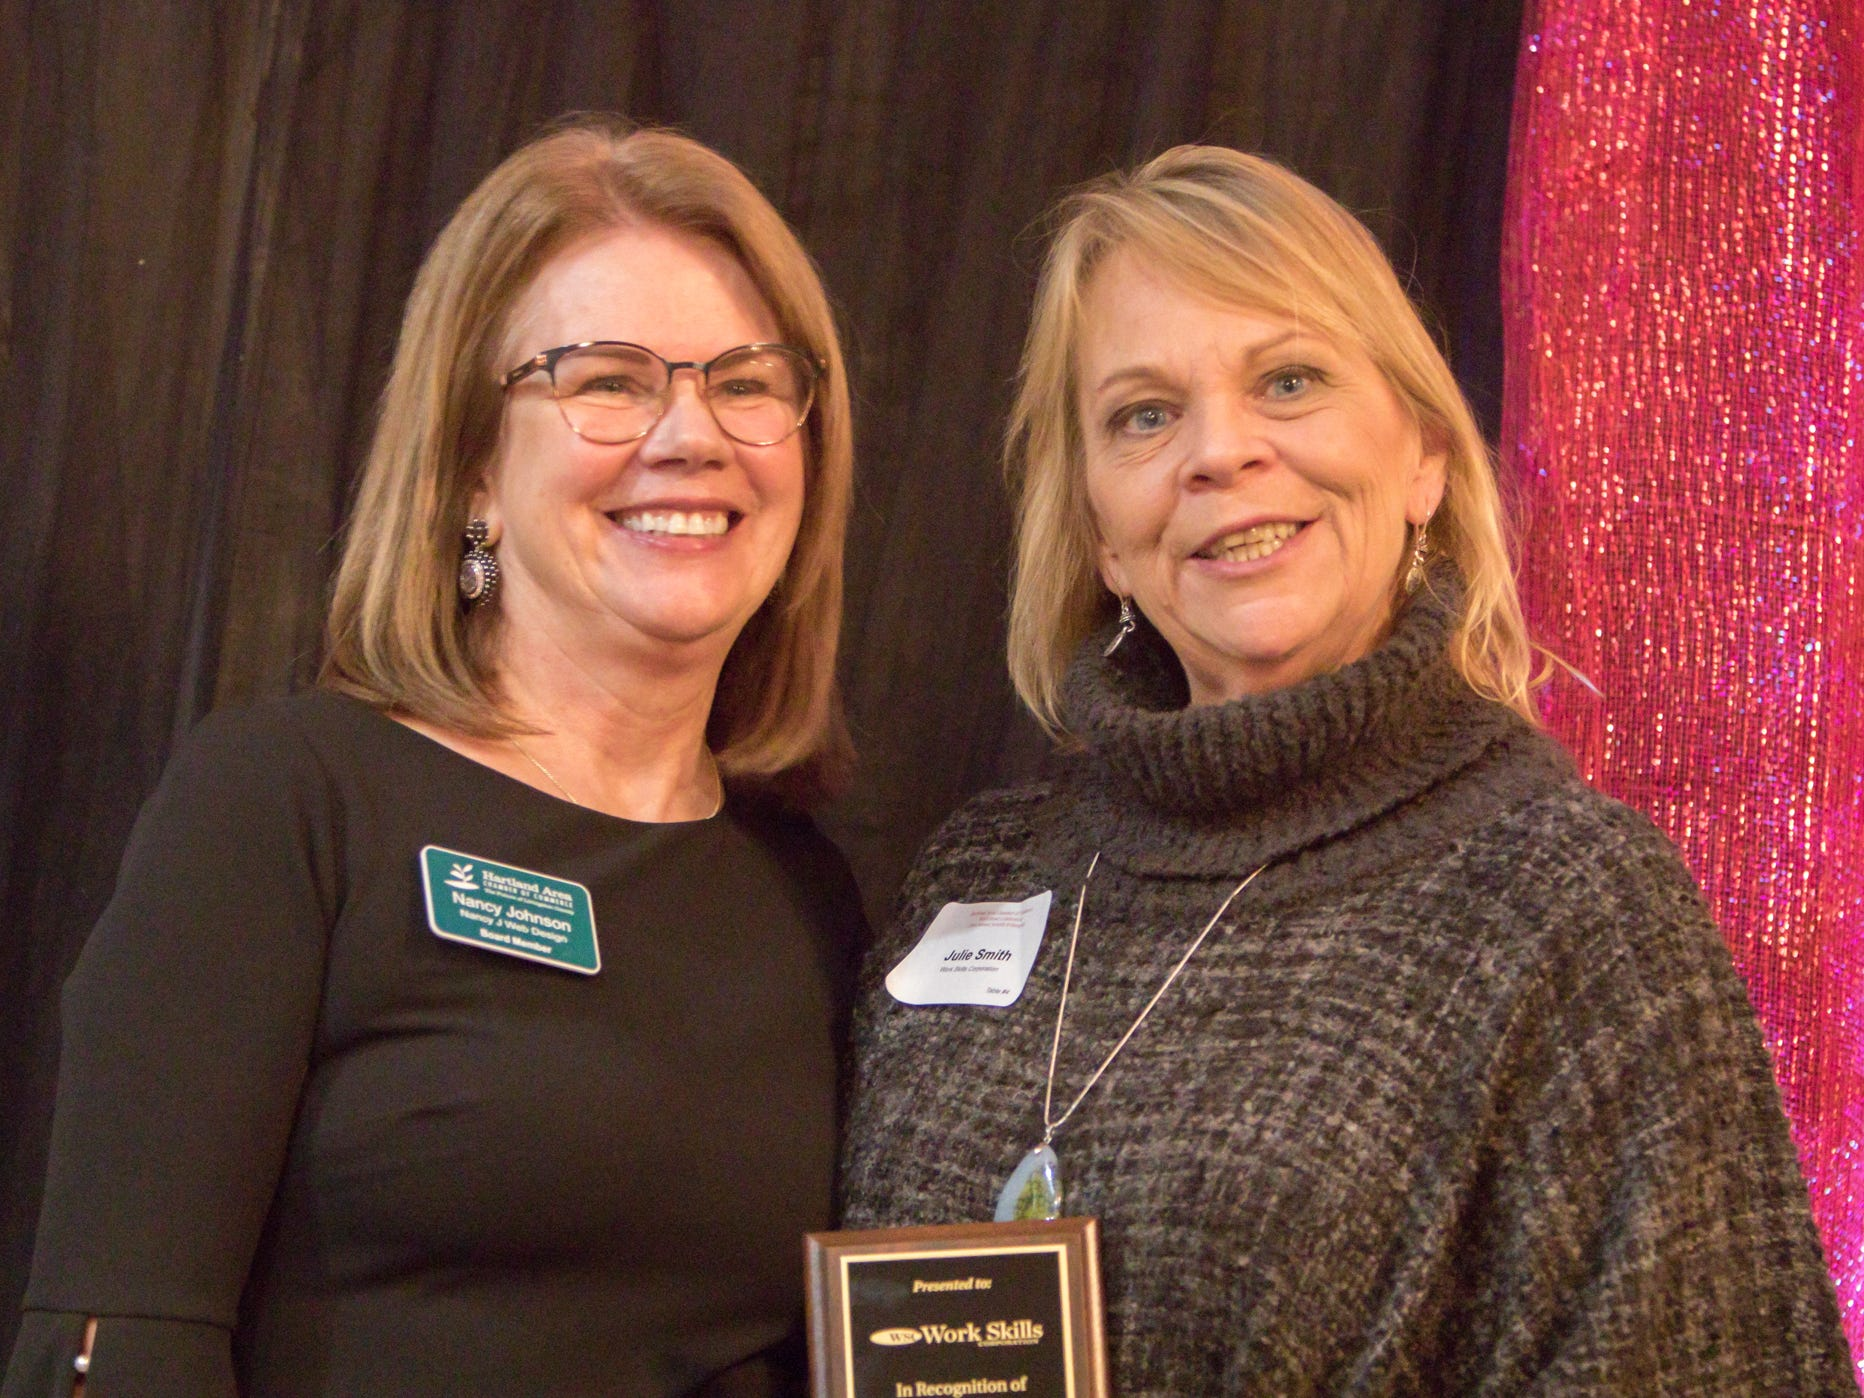 Hartland Chamber board director Nancy Johnson, left, presents Julie Smith, development manager for Work Skills Foundation, with a plaque for 45 years of service at the chamber's awards dinner Thursday, Jan. 31, 2019.